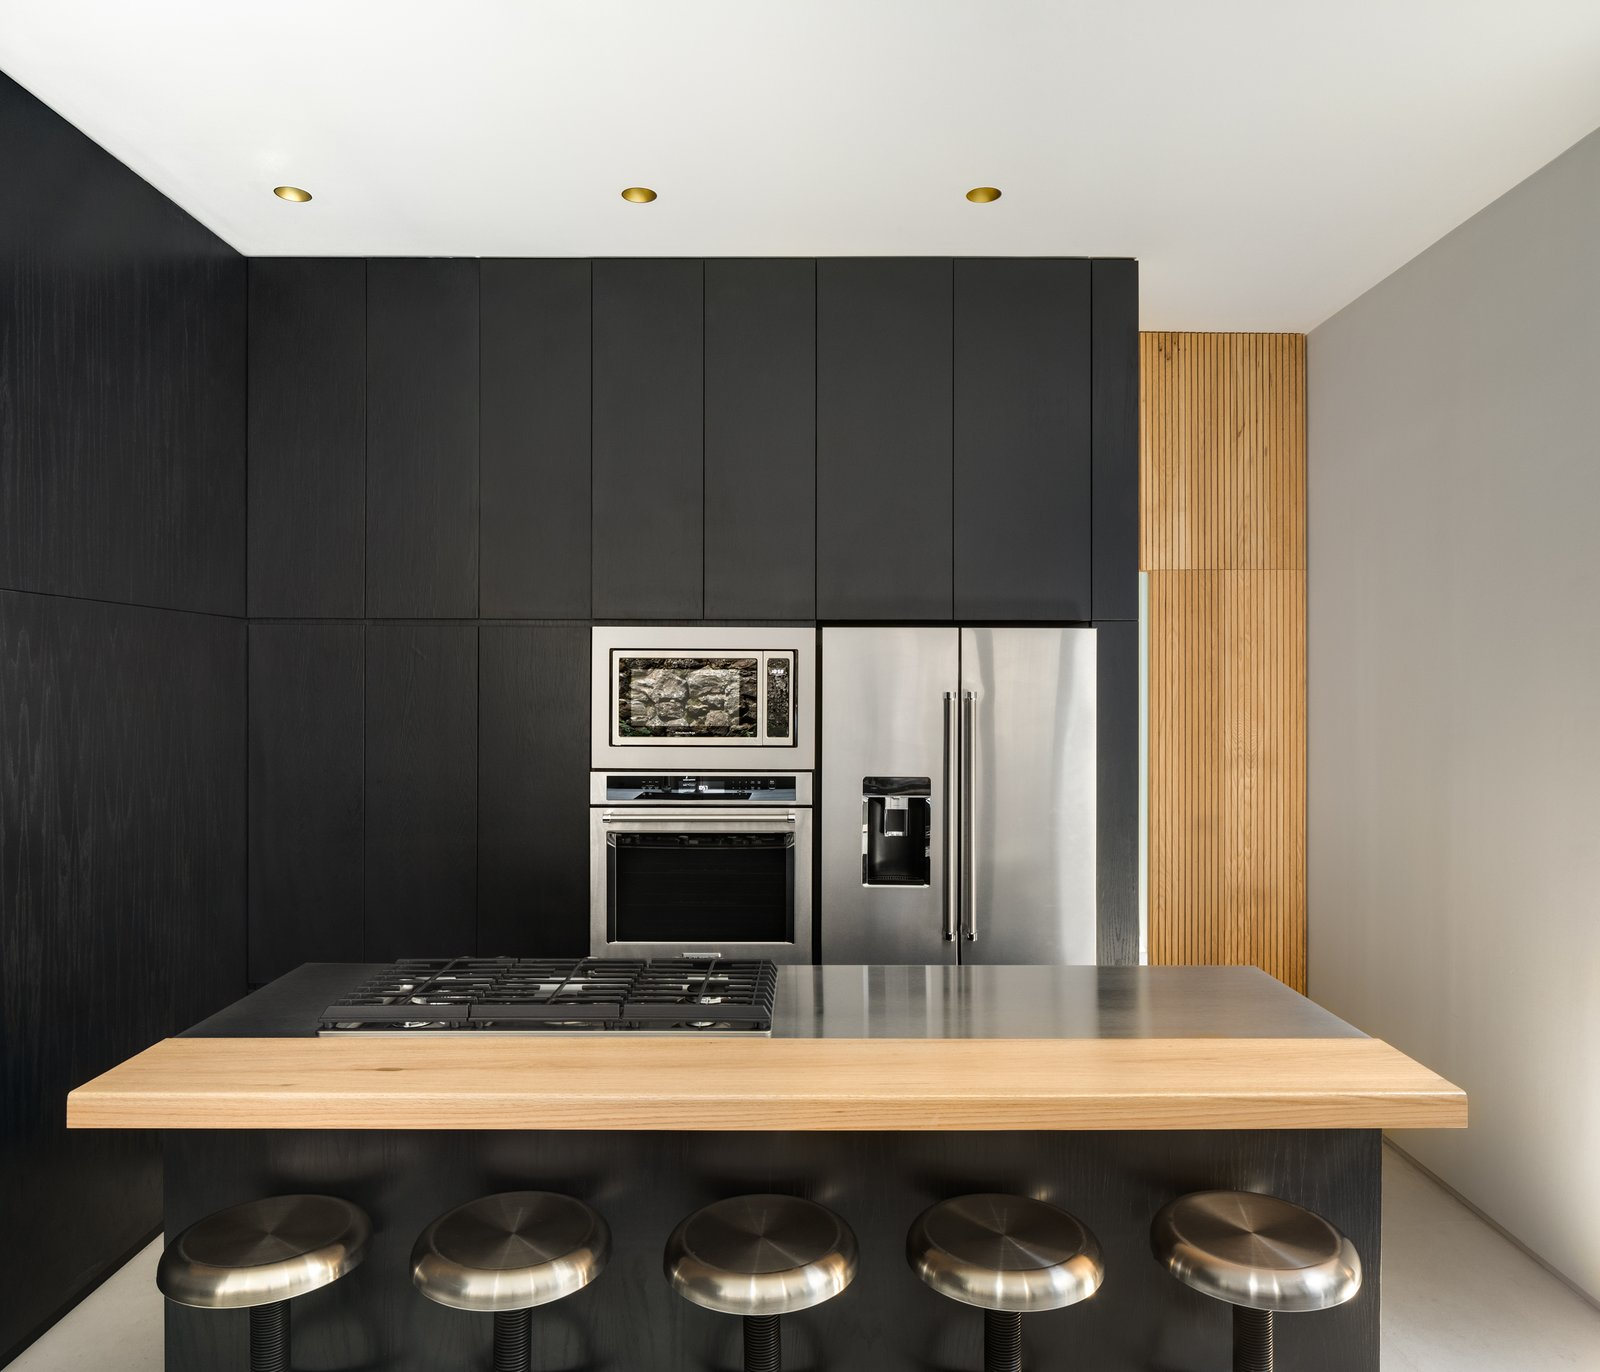 Lluvia by PPAA black kitchen with stainless steel and wood accents